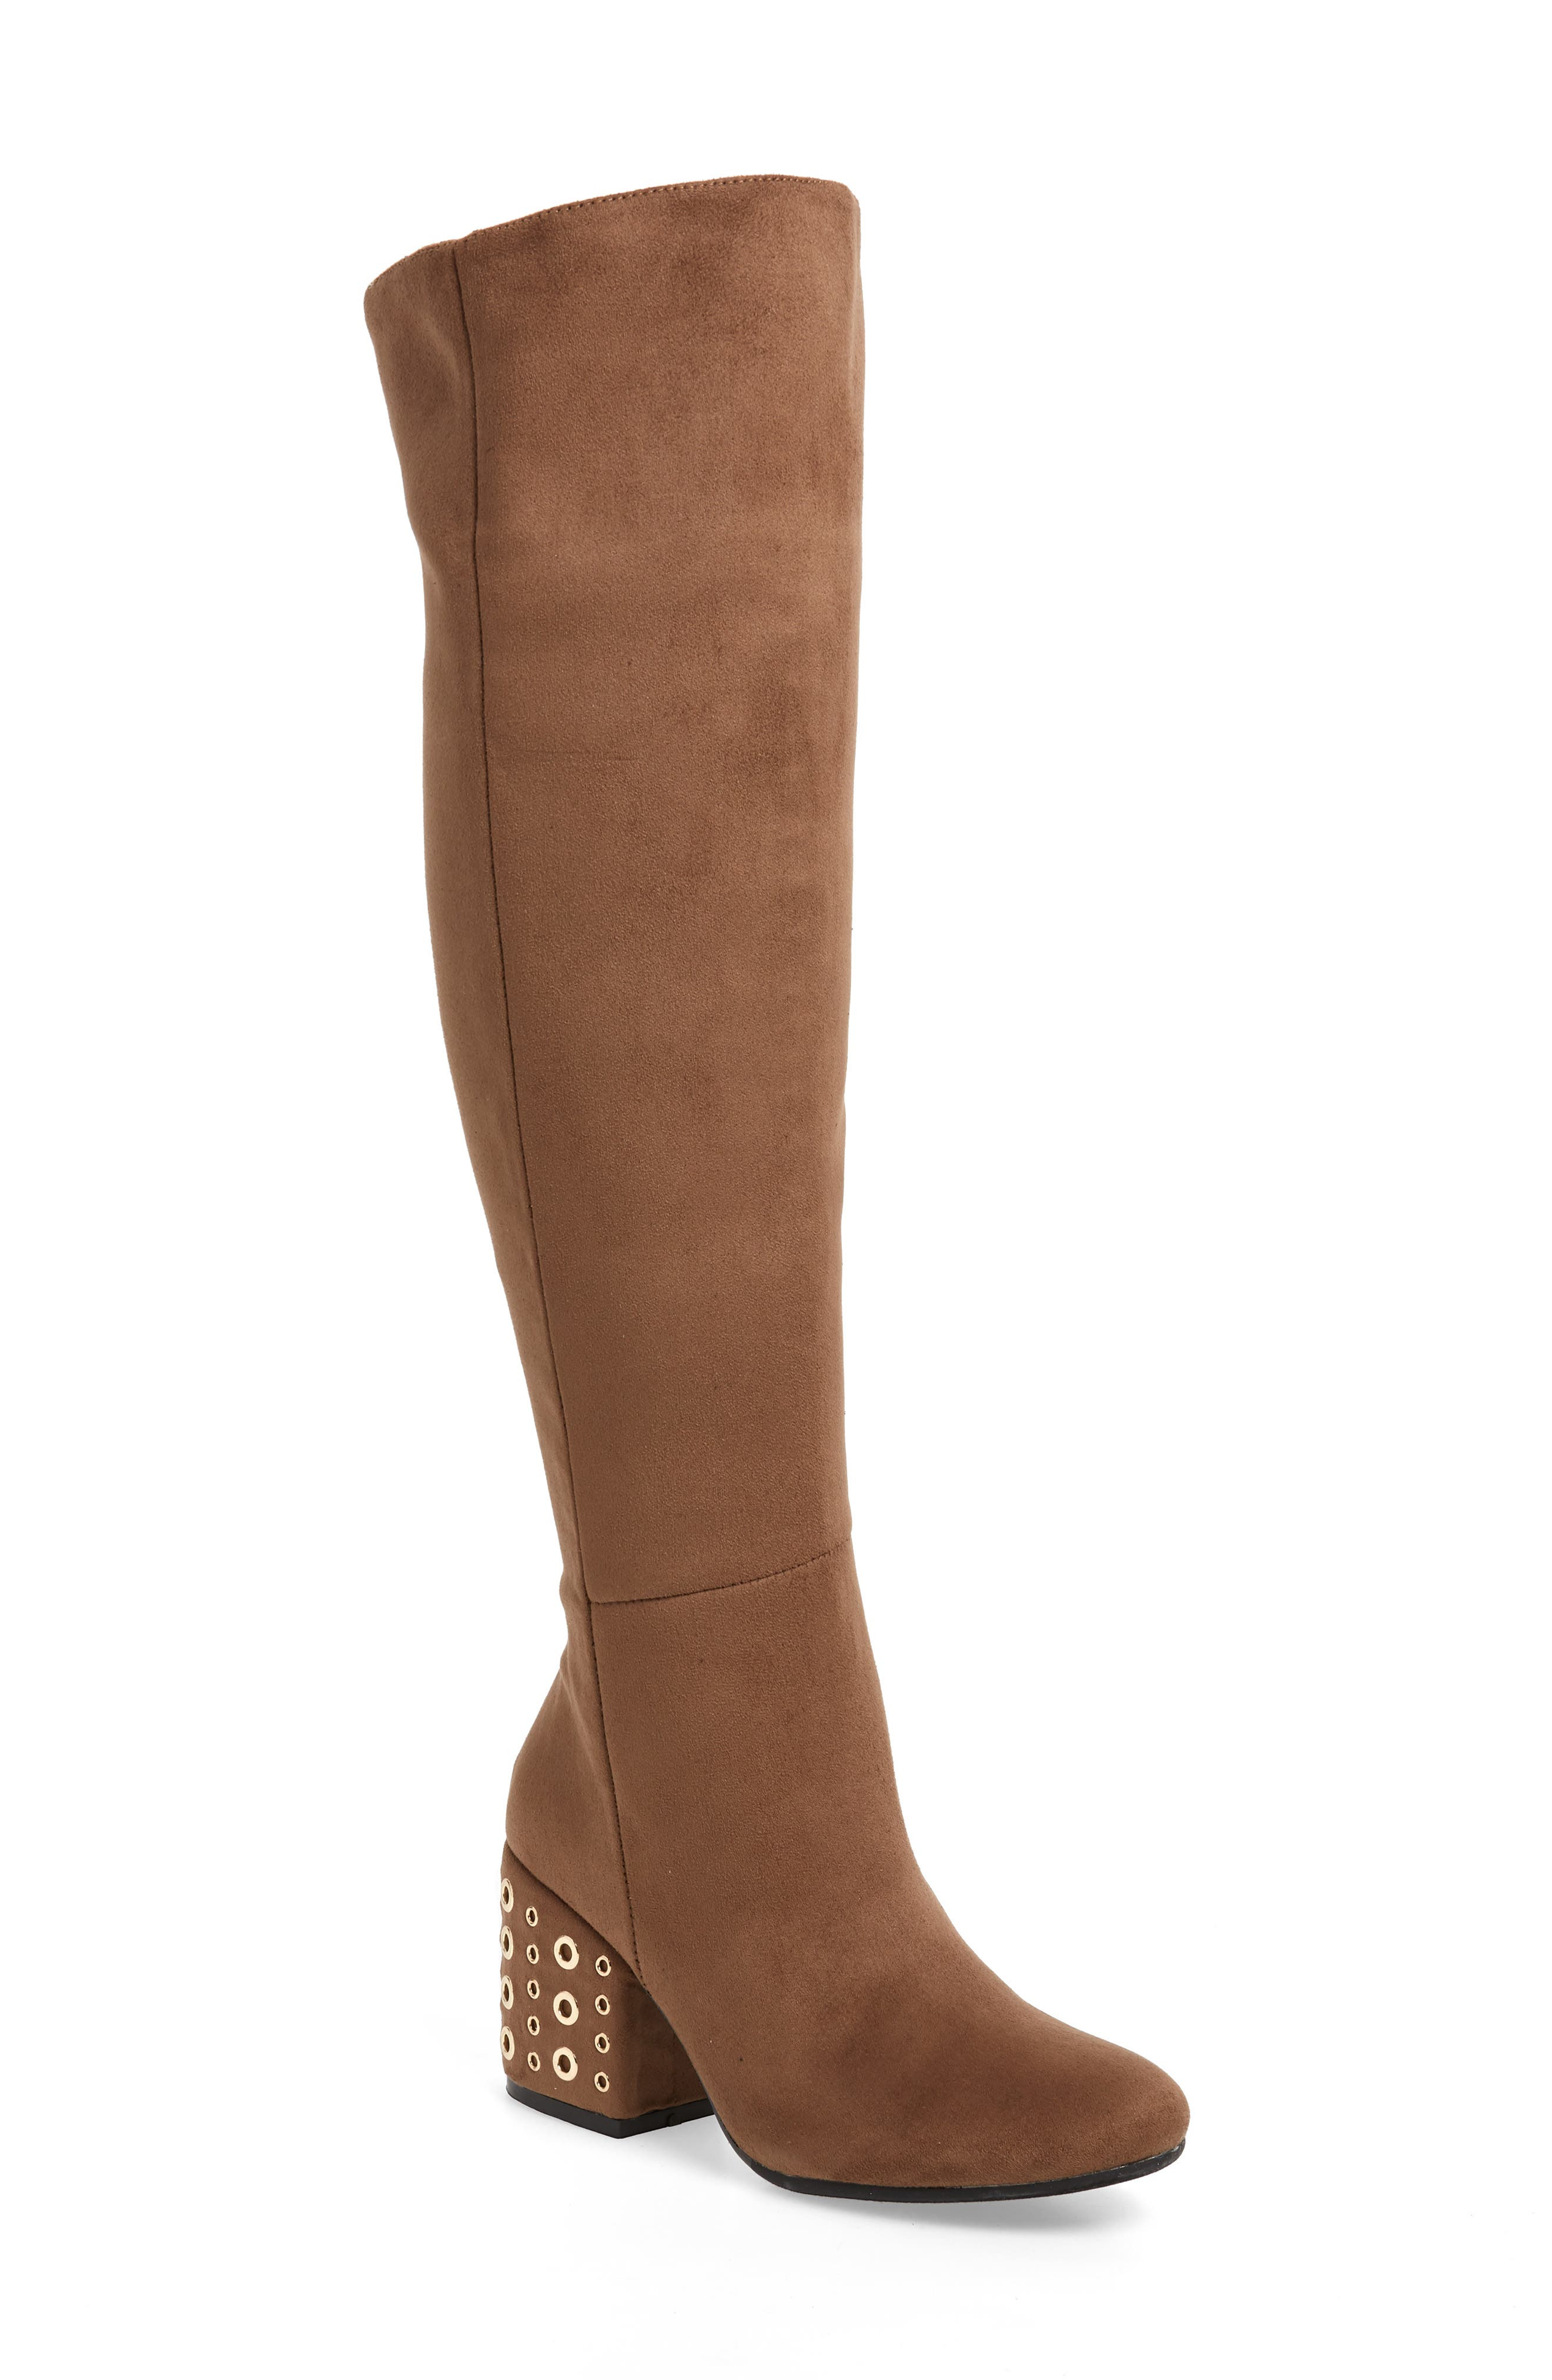 Sbicca Ellaria Over The Knee Boot- Brown